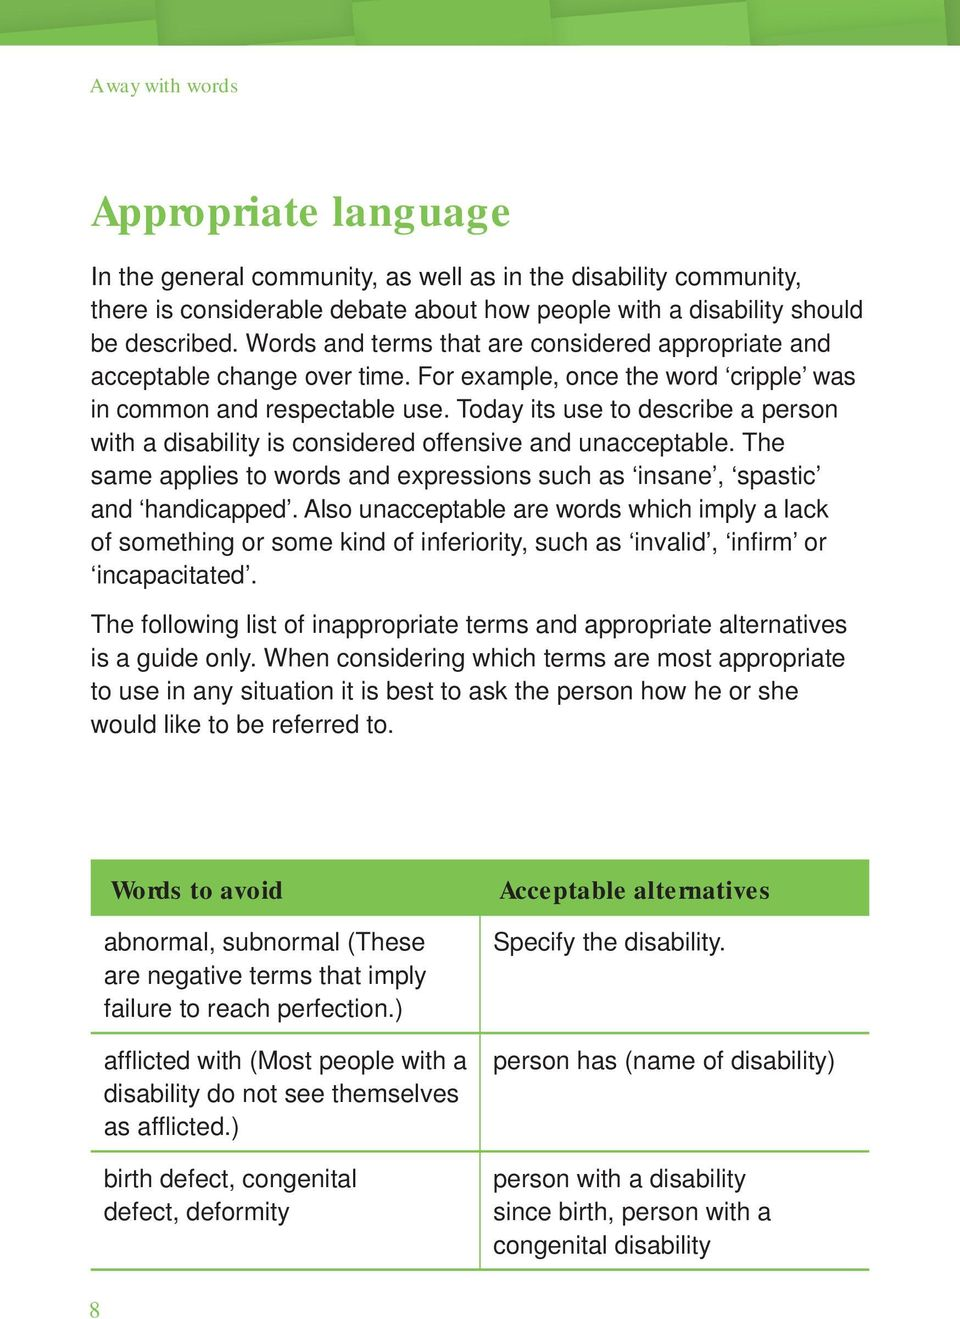 Today its use to describe a person with a disability is considered offensive and unacceptable. The same applies to words and expressions such as insane, spastic and handicapped.